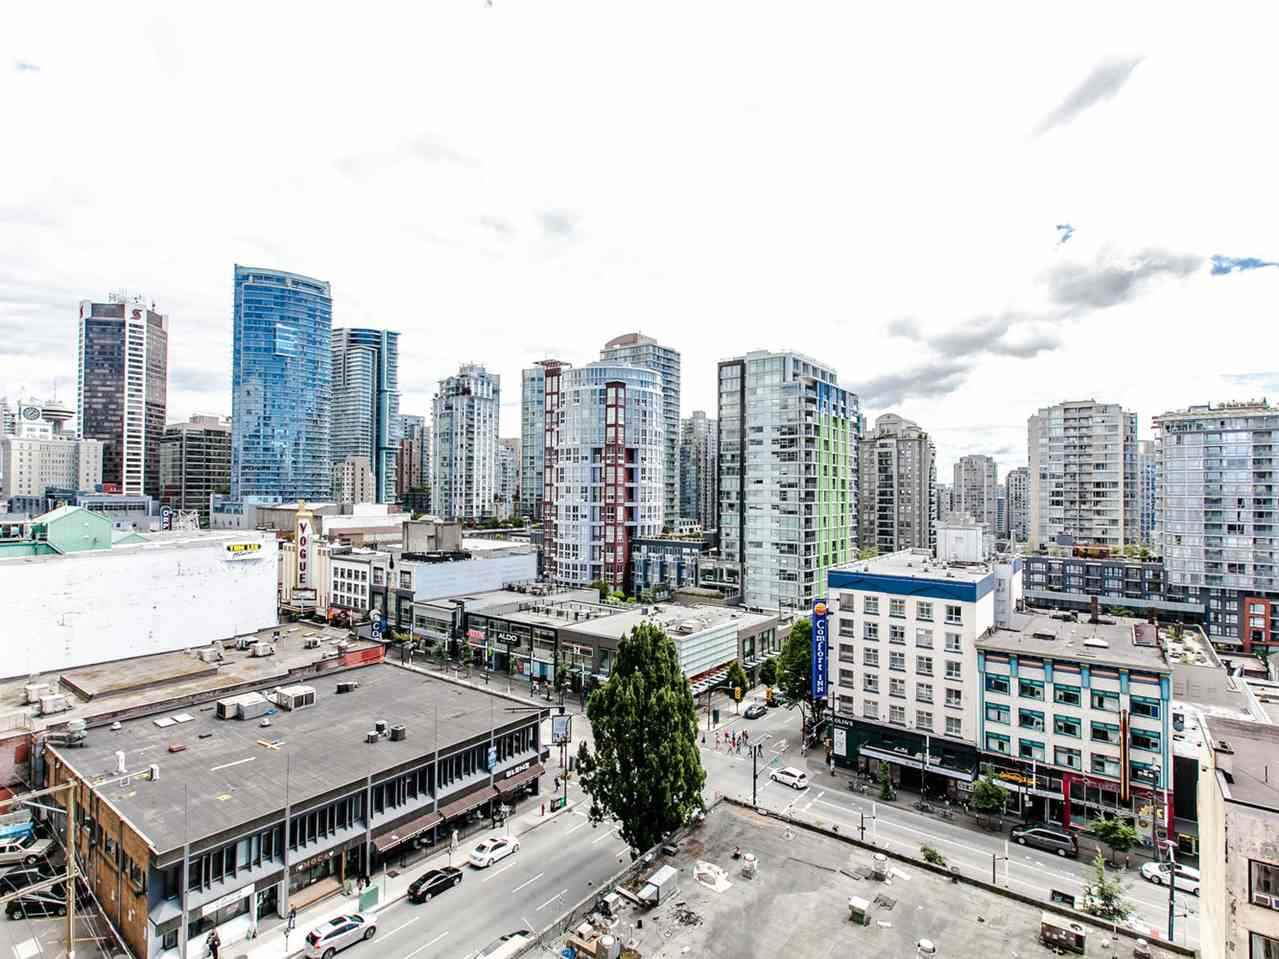 Main Photo: 807 1010 HOWE Street in Vancouver: Downtown VW Condo for sale (Vancouver West)  : MLS® # R2160002